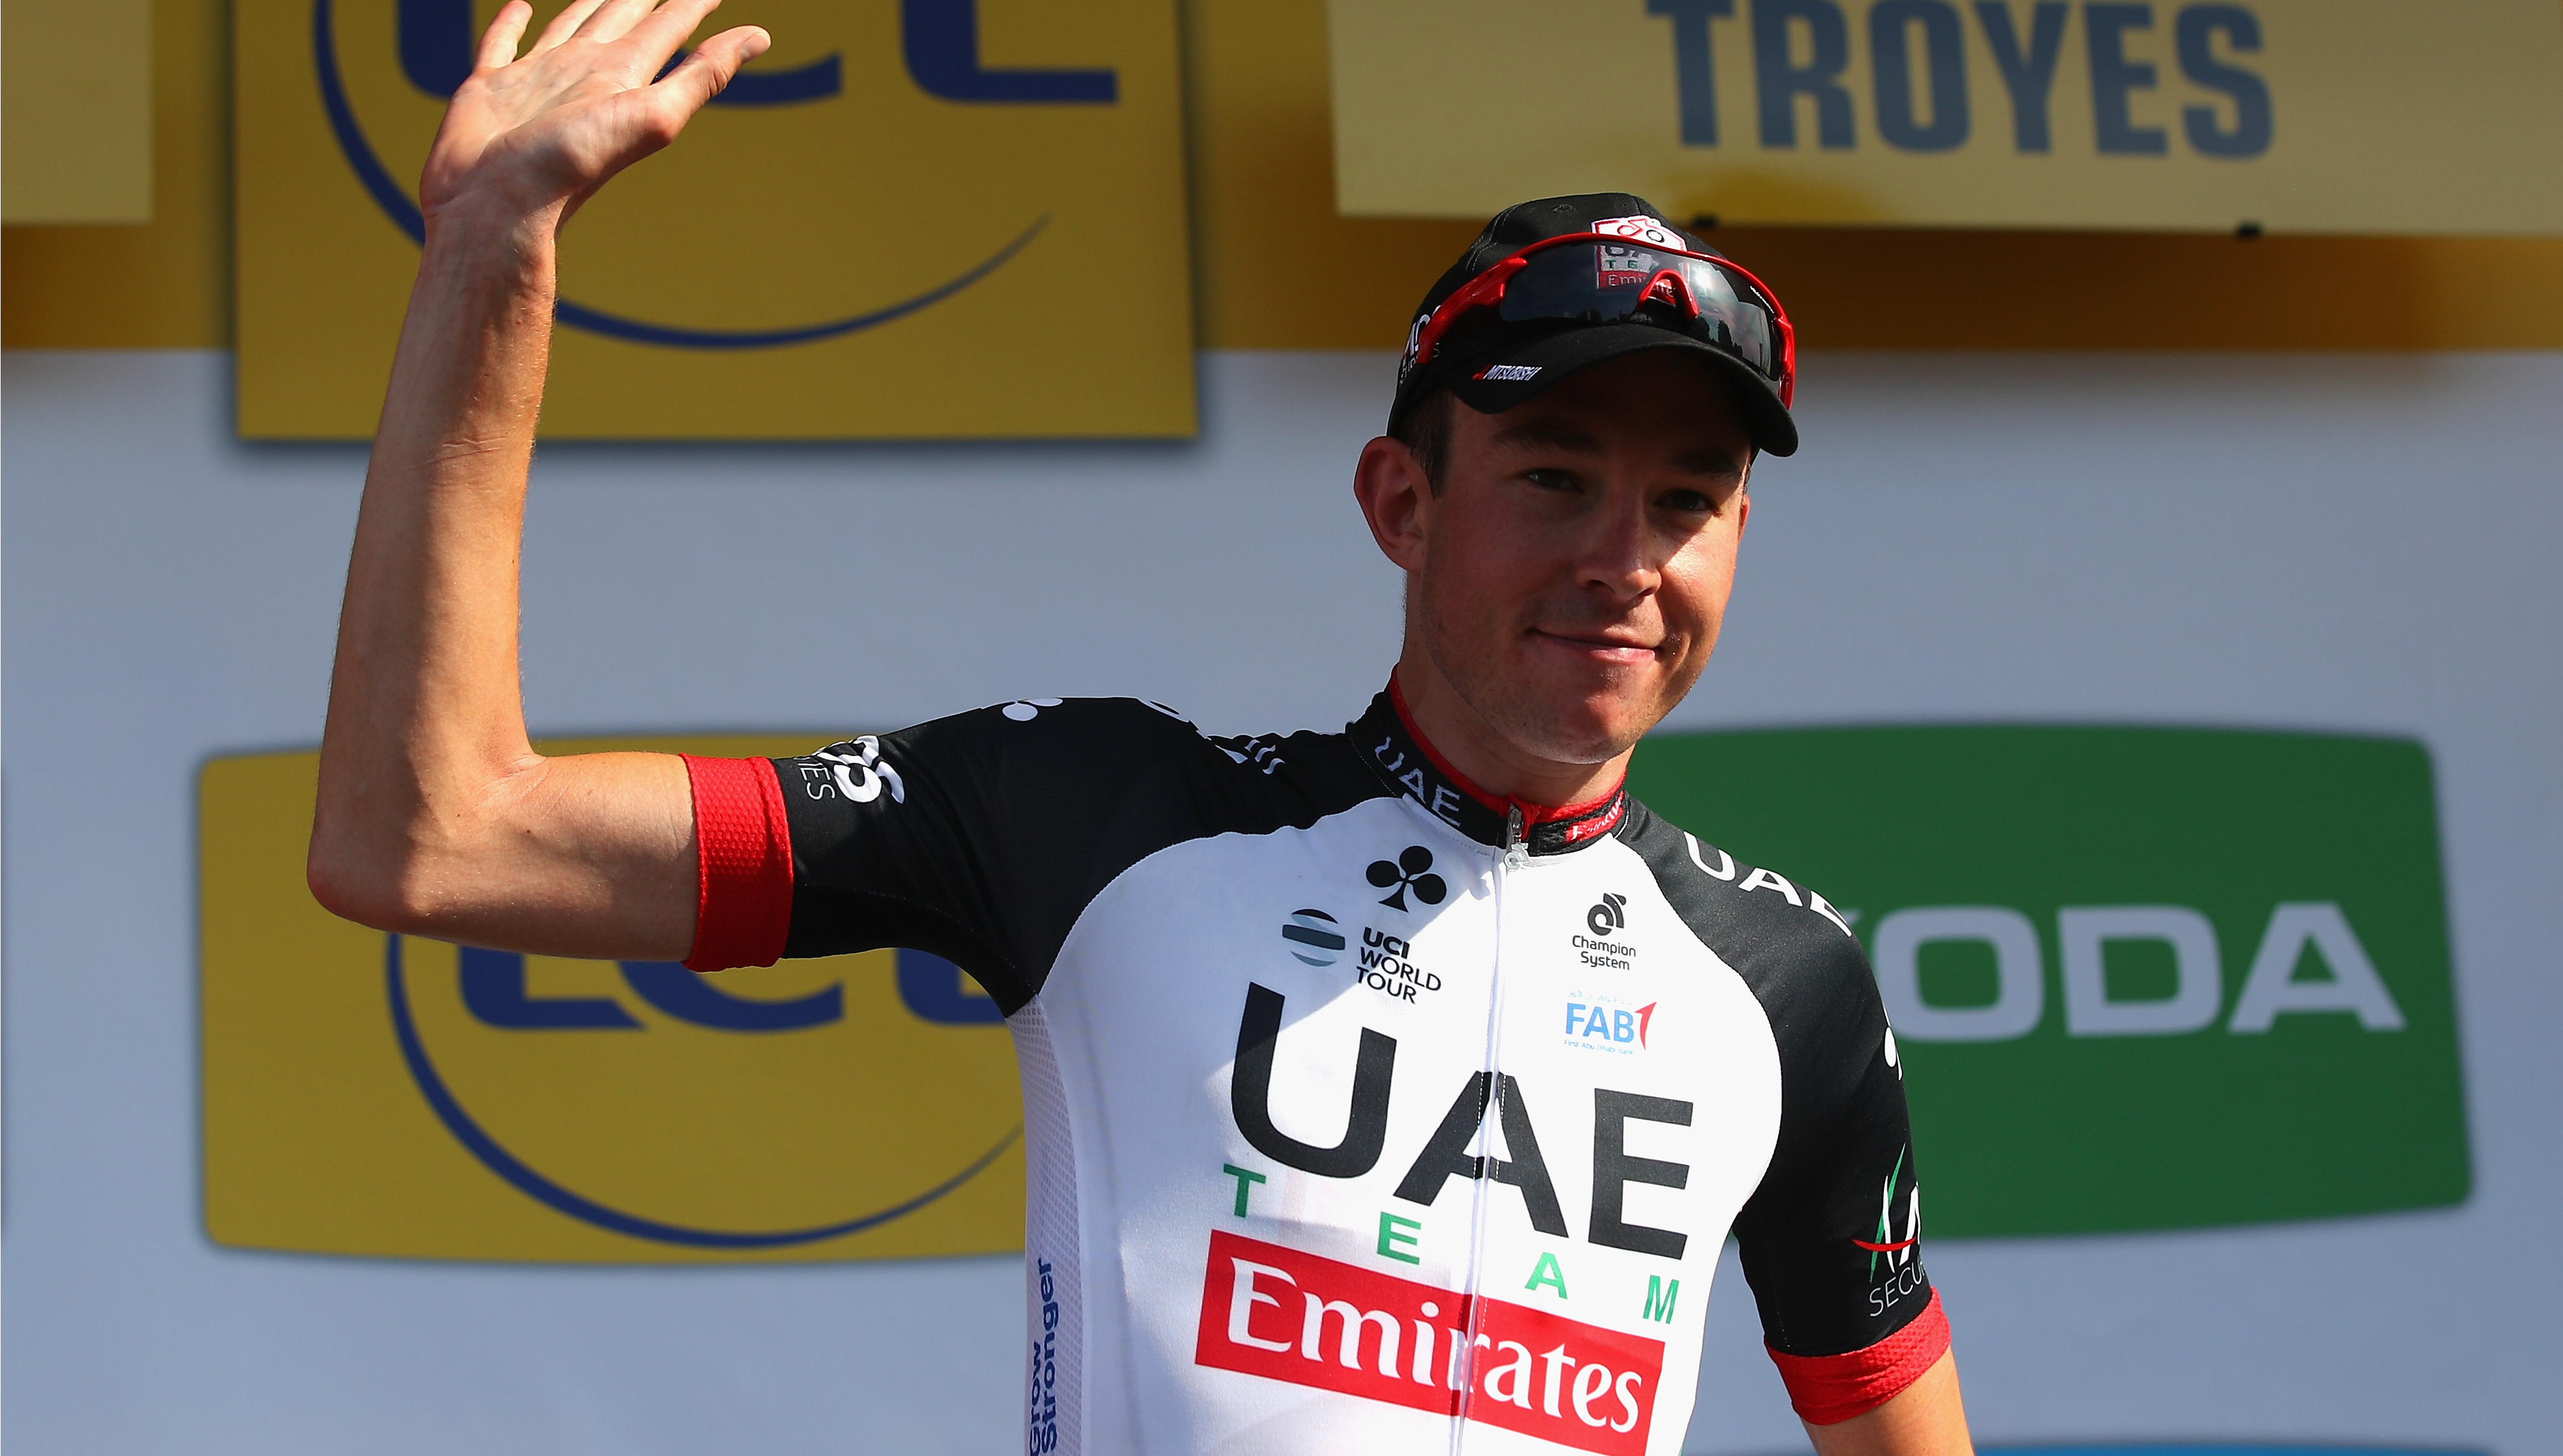 Cycling news  UAE Team Emirates  Vegard Stake Laengen looks past Tour de  France disappointment to challenges ahead - Article - Sport360 0ad8472dc